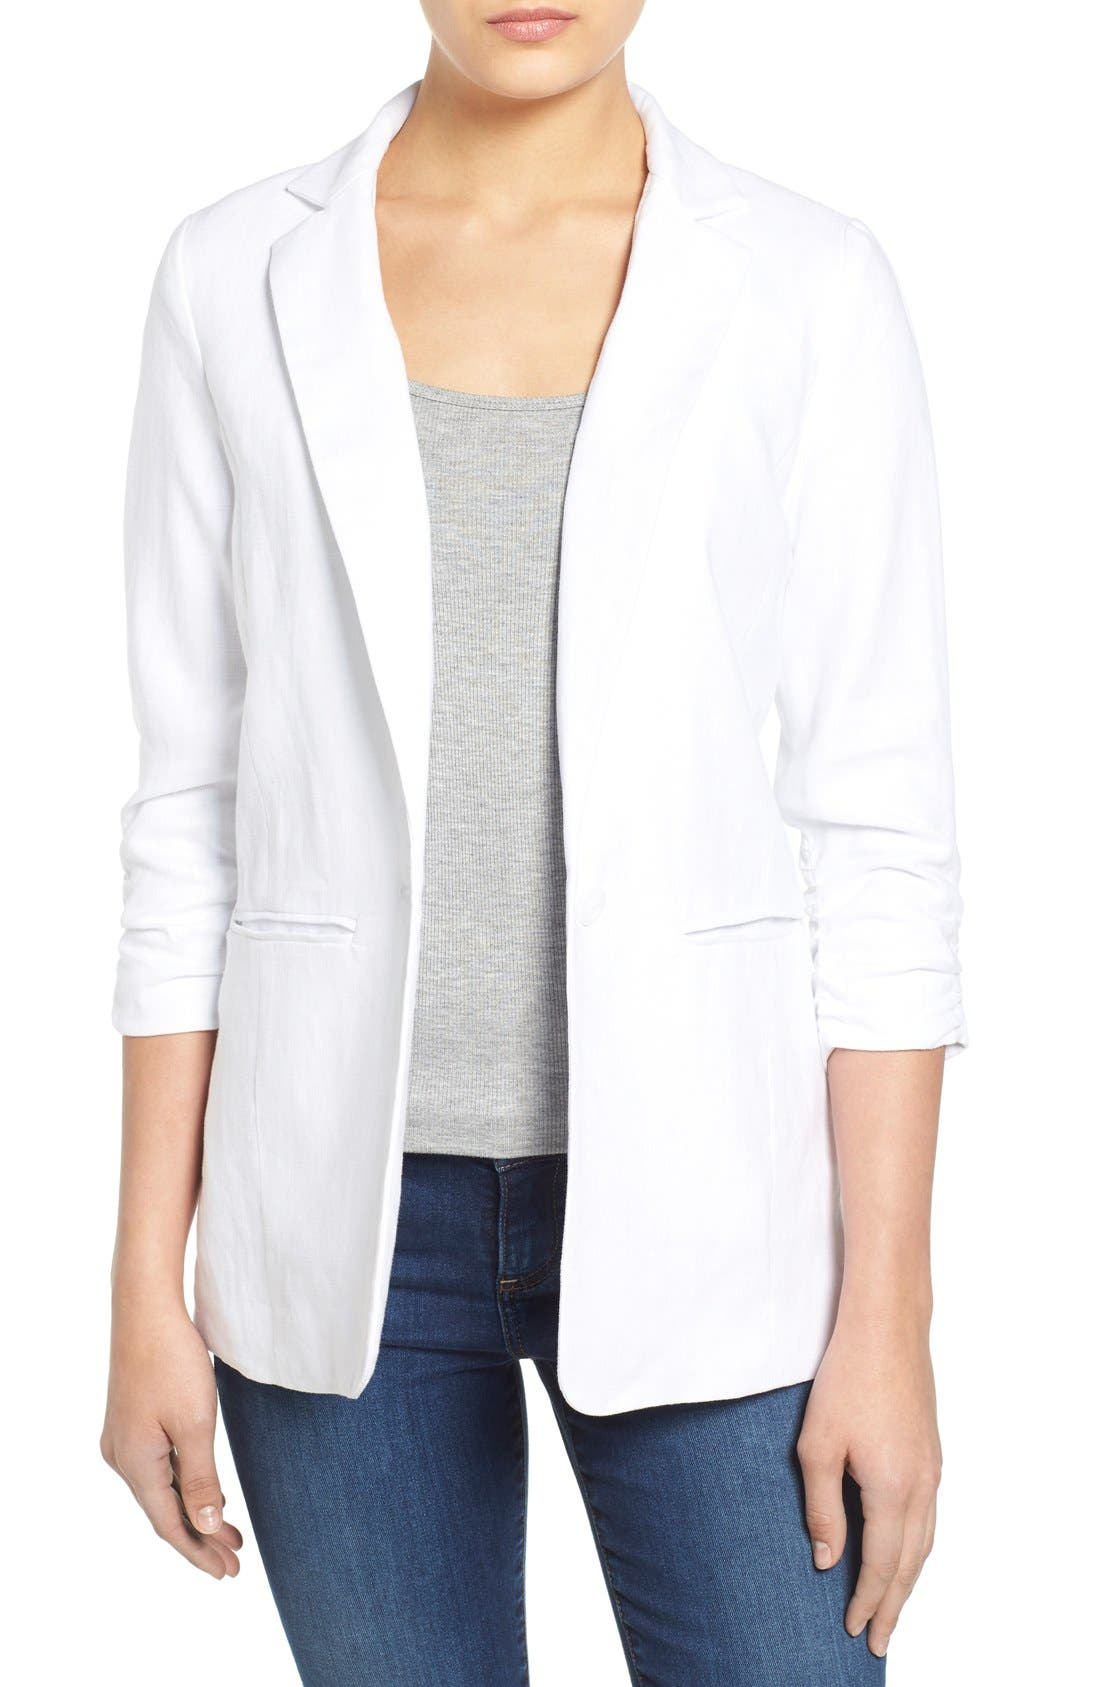 MICHAEL MICHAEL KORS, Linen Shirred Sleeve Boyfriend Jacket, Main thumbnail 1, color, 100